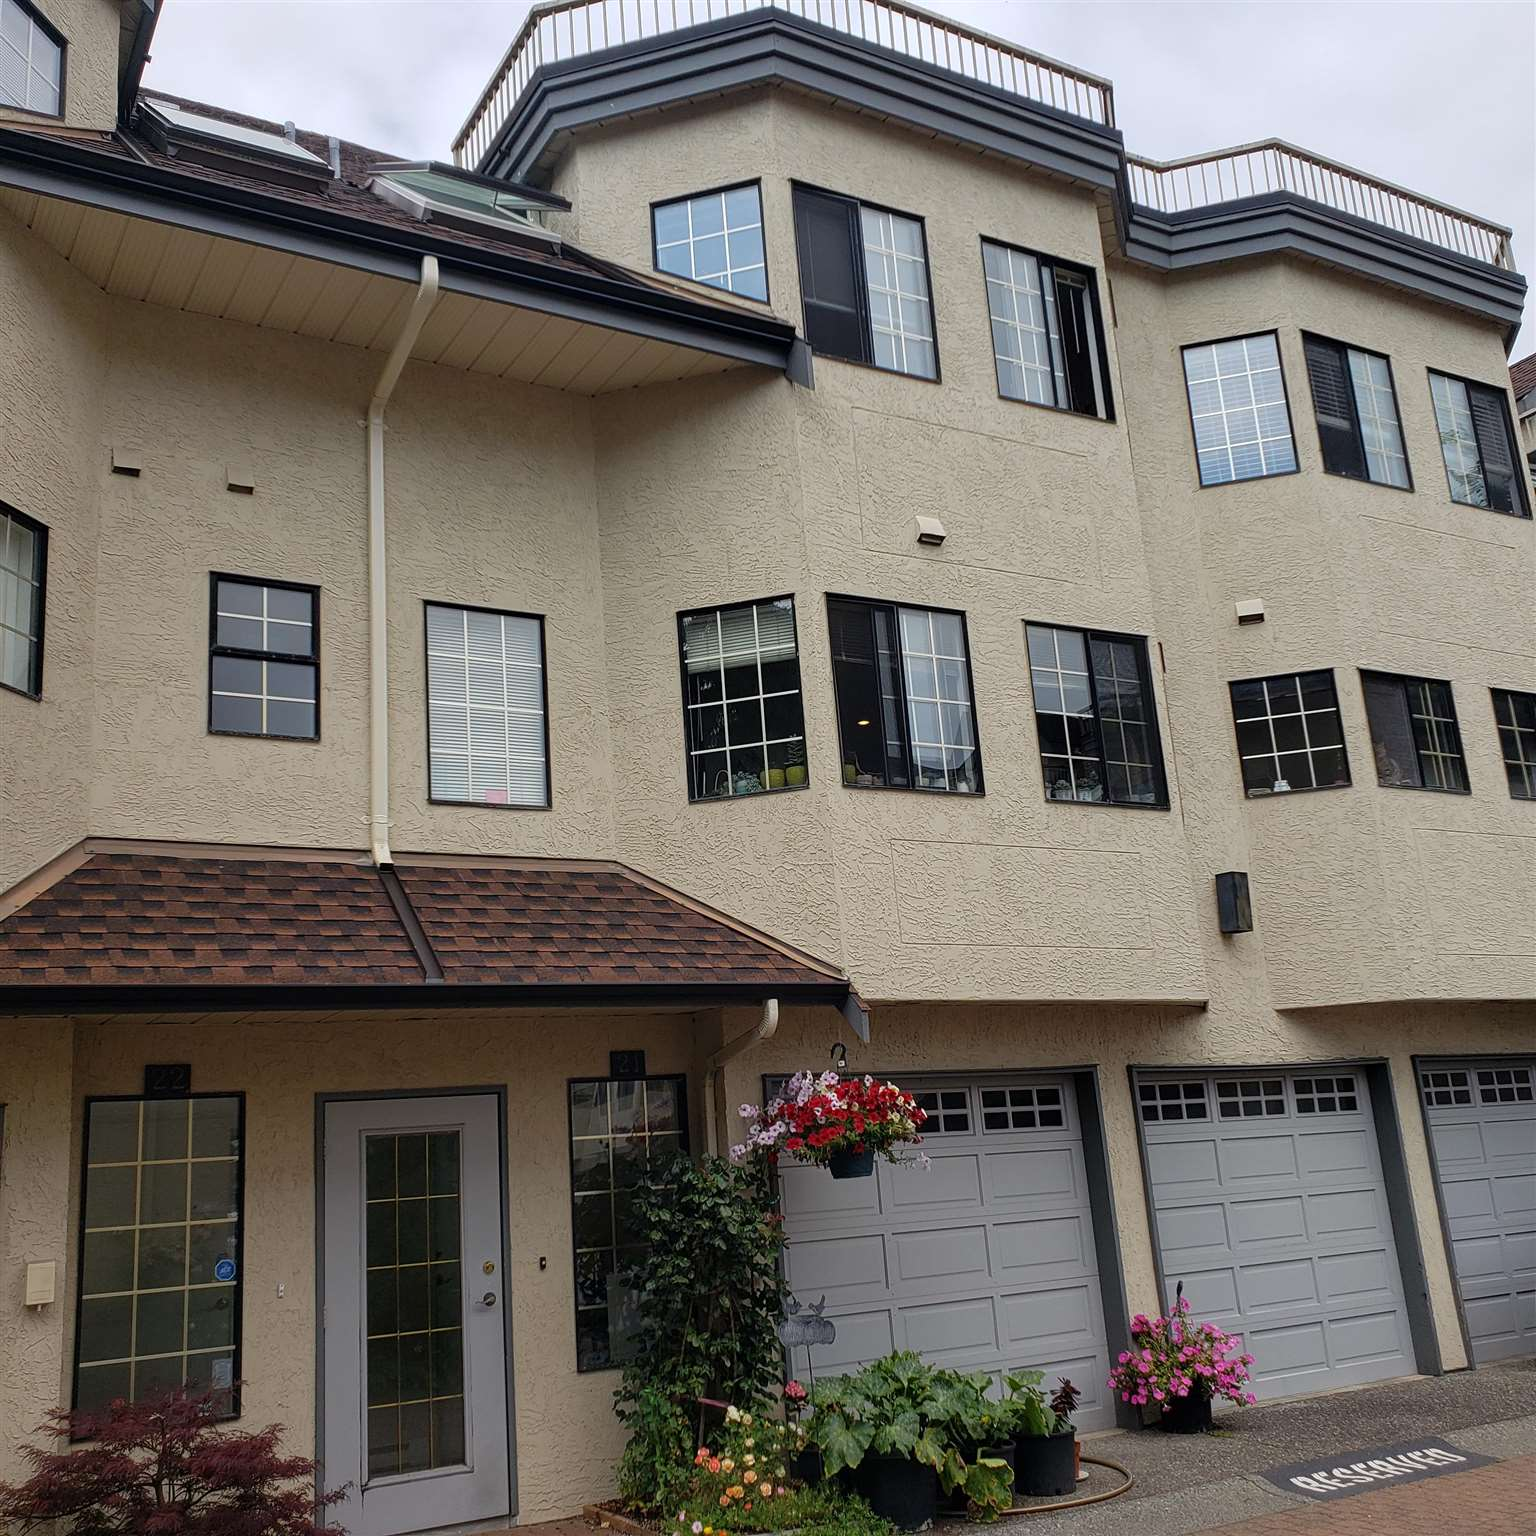 21 8591 BLUNDELL ROAD - Brighouse South Townhouse for sale, 5 Bedrooms (R2600987)